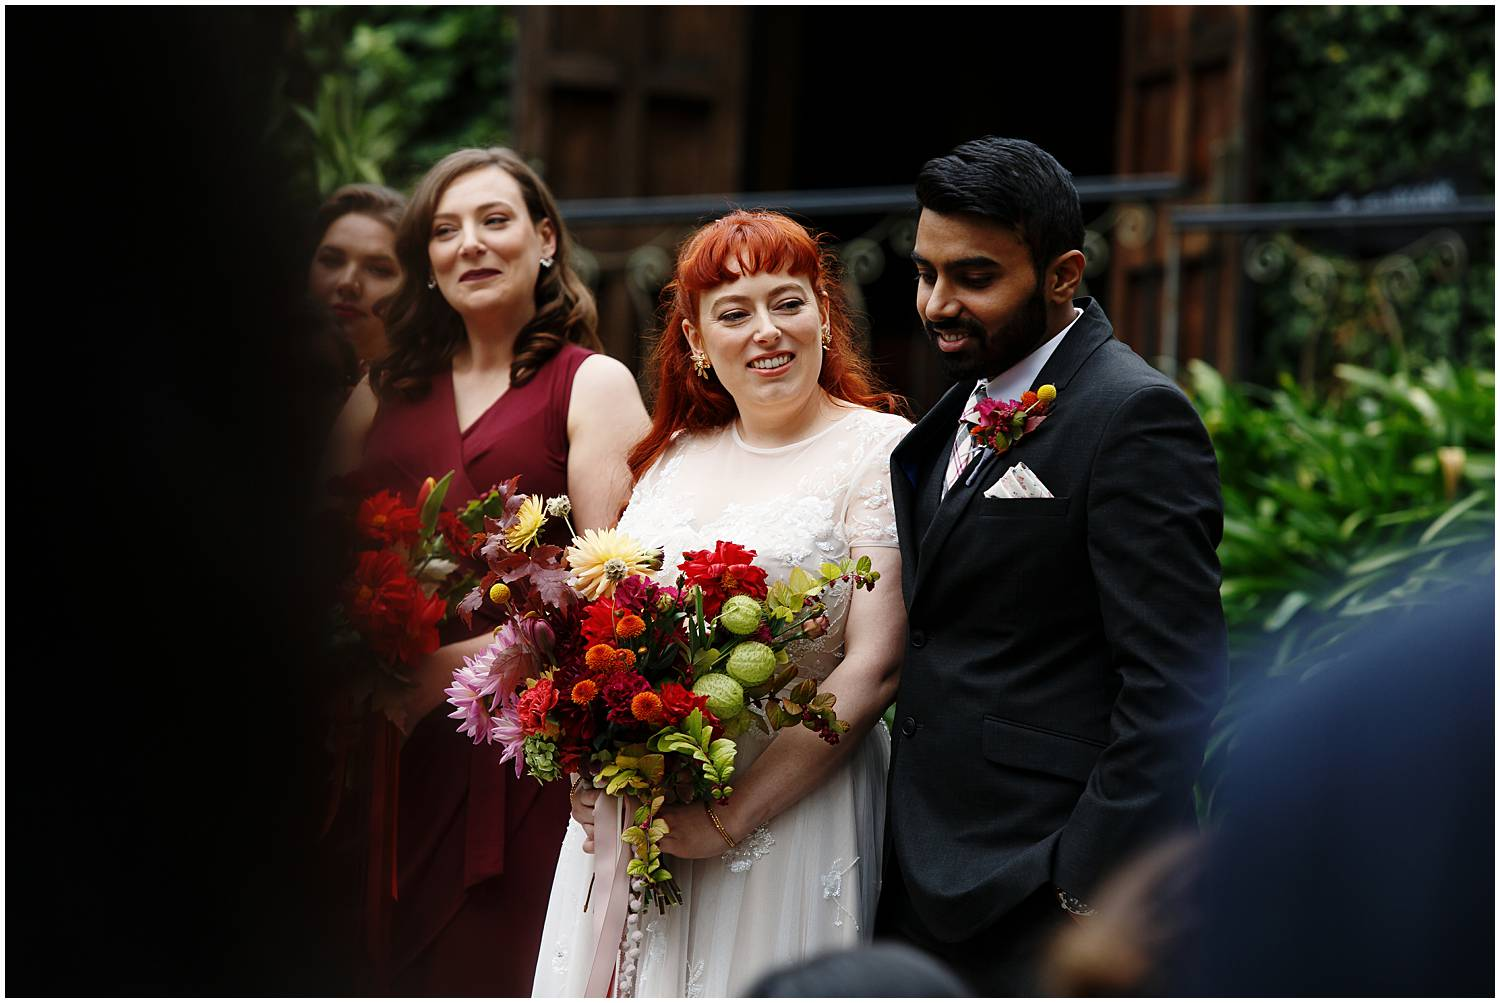 colourful autumn wedding melbourne023.jpg